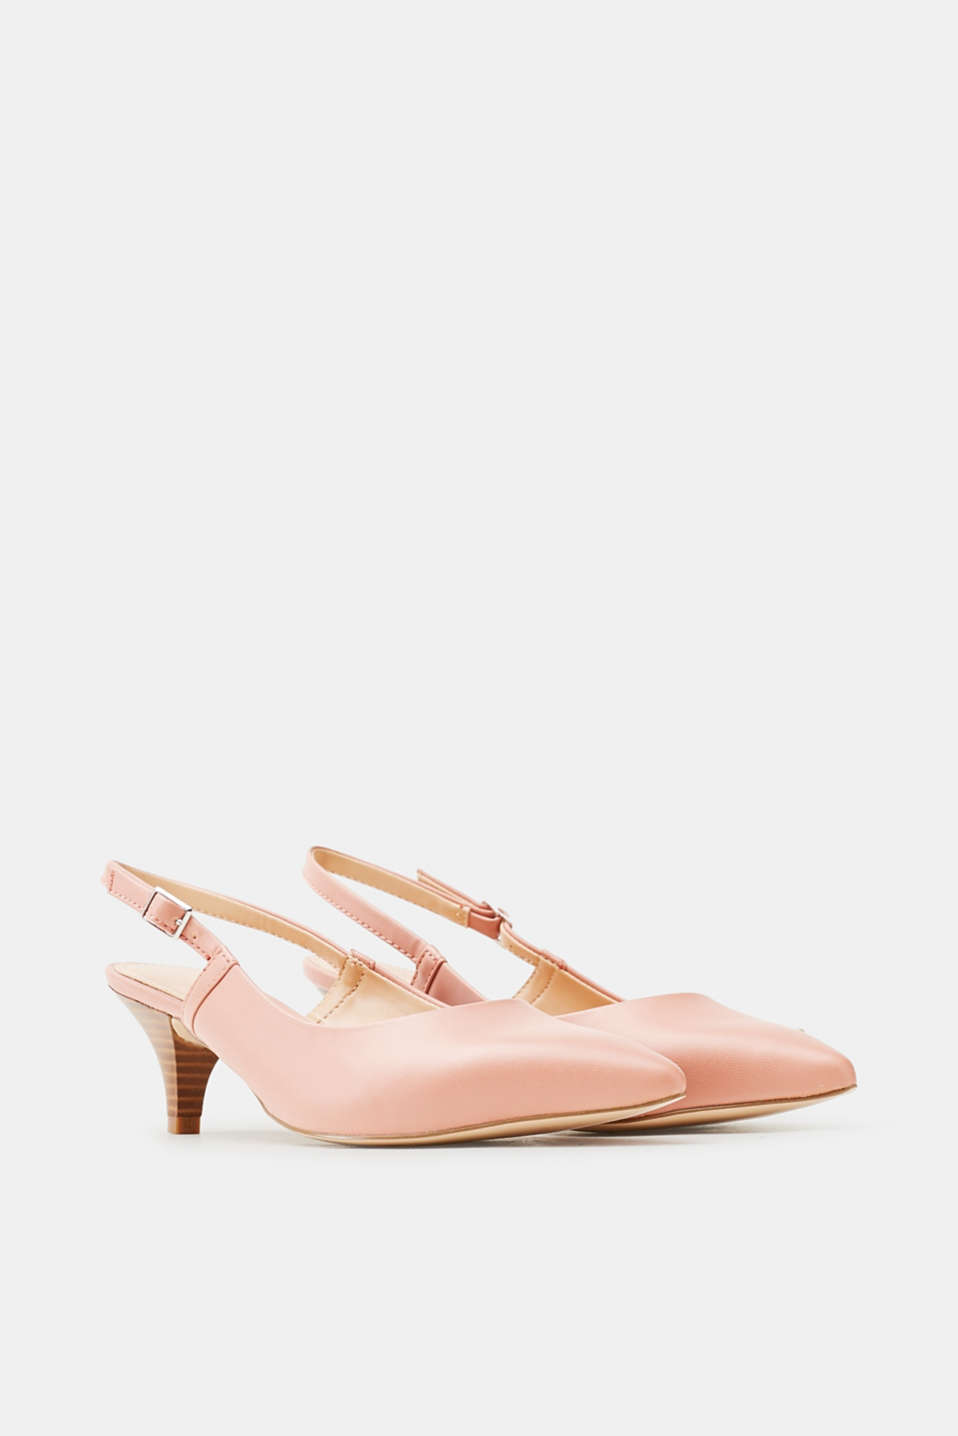 Slingback court shoes, smooth faux leather